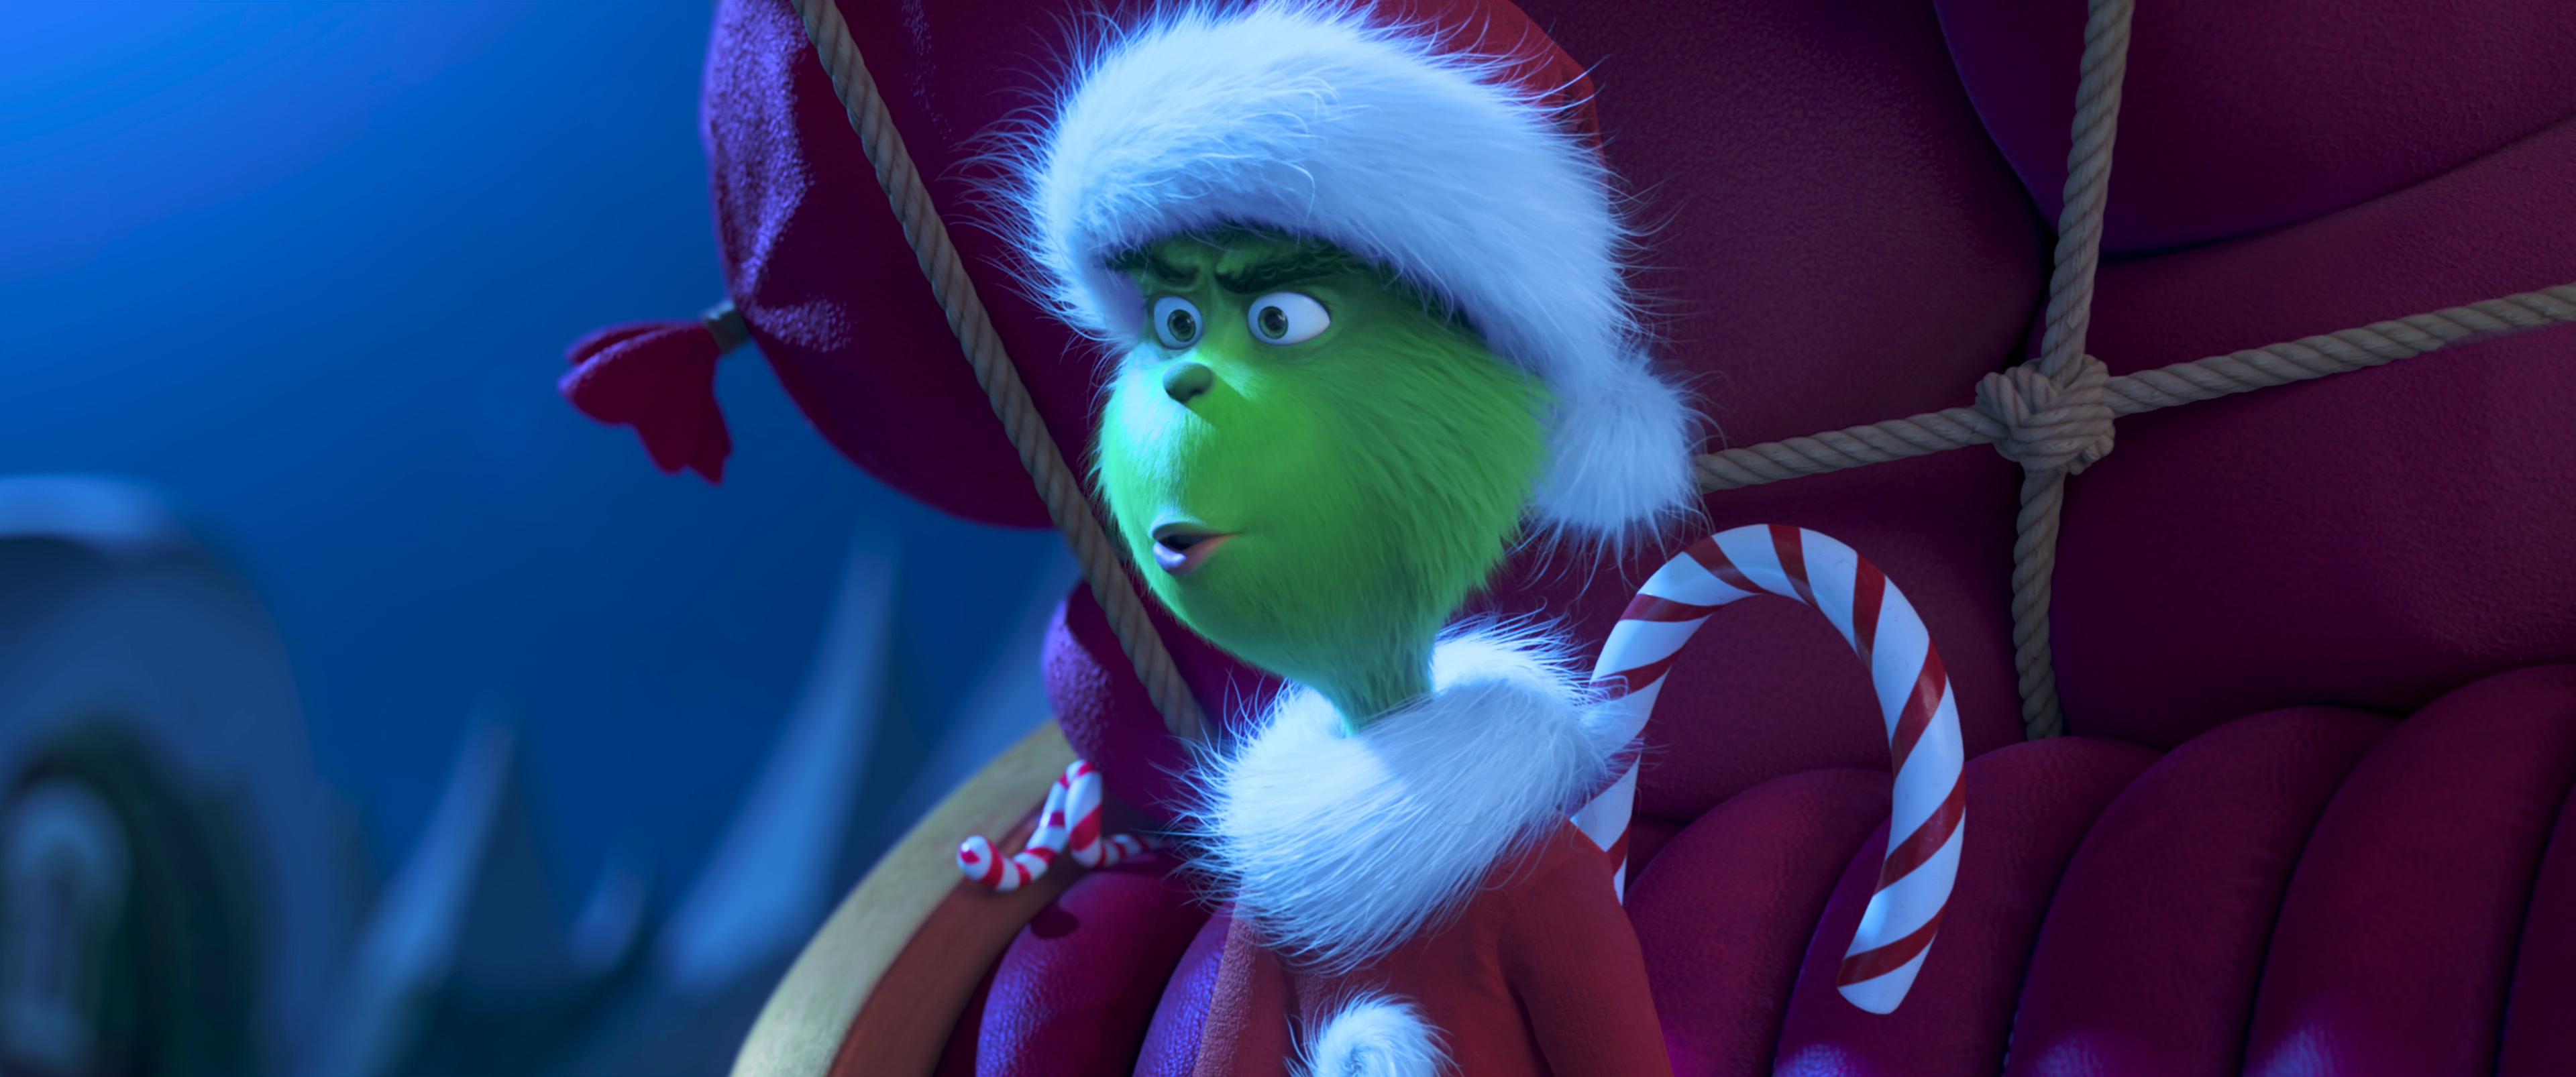 the grinch 2018 download 480p